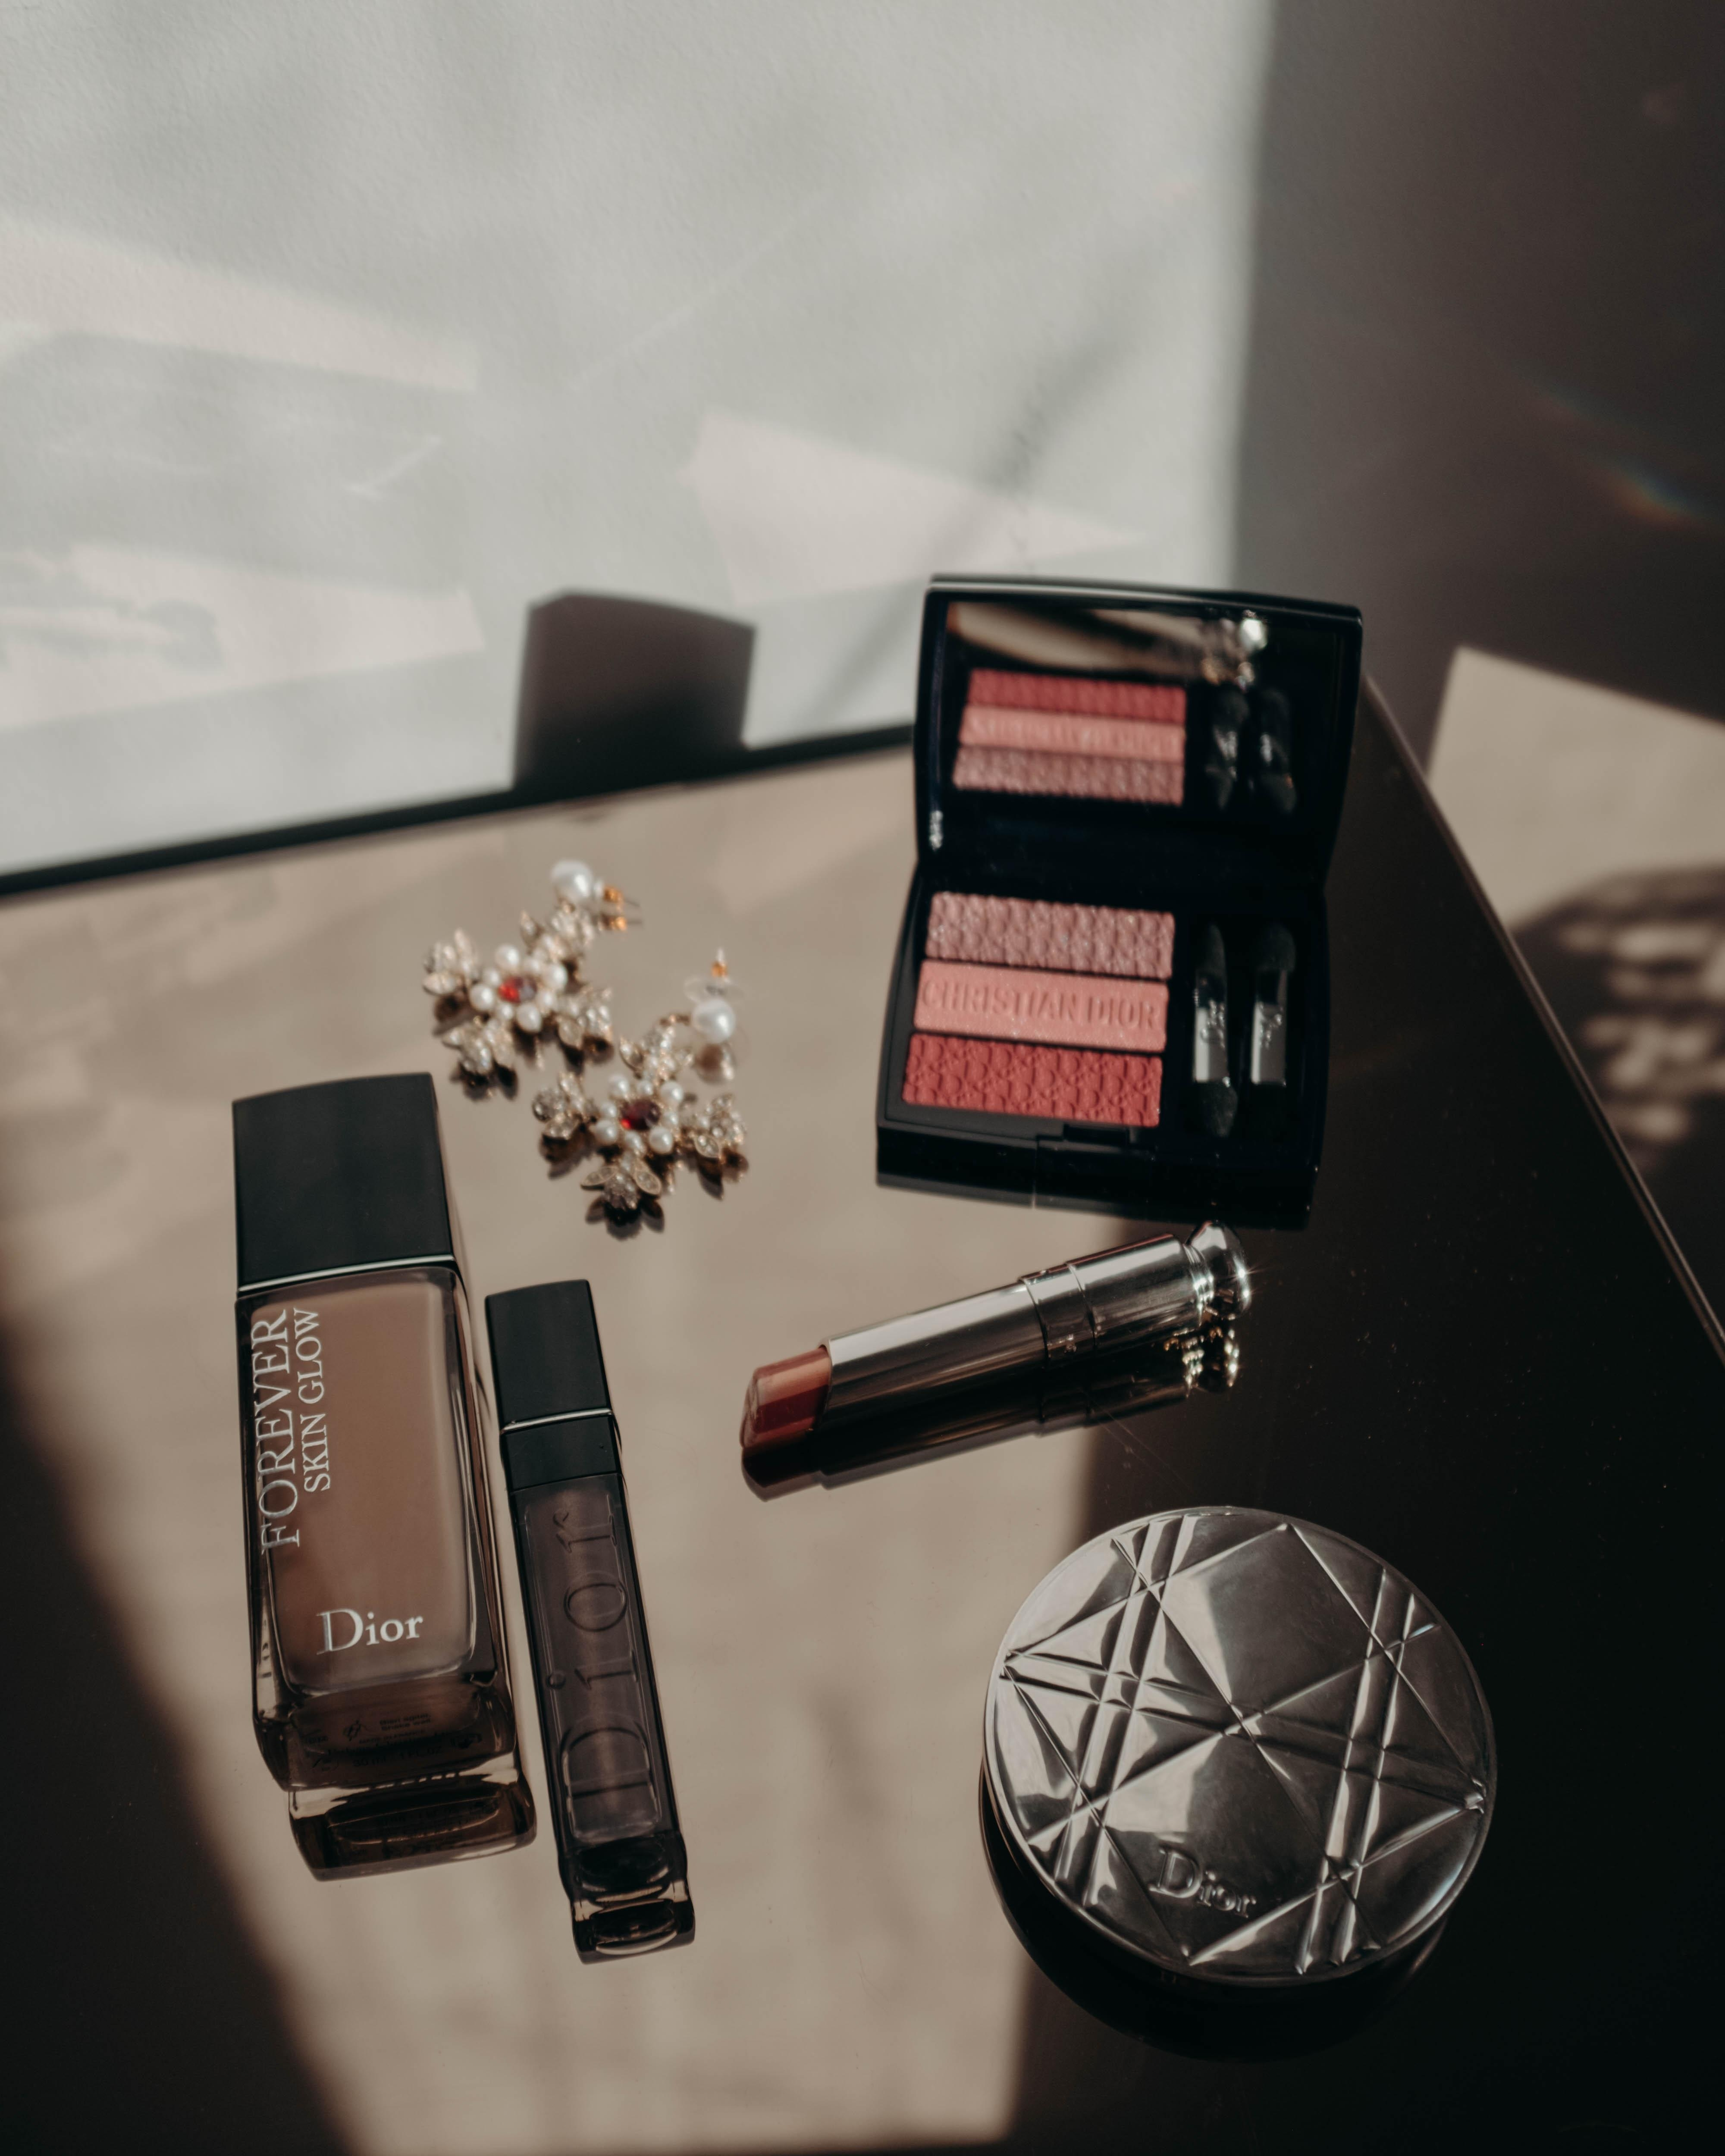 Makeup routine auf meiner Glaskommode von #made #glasstable  #dior #makeup #beauty